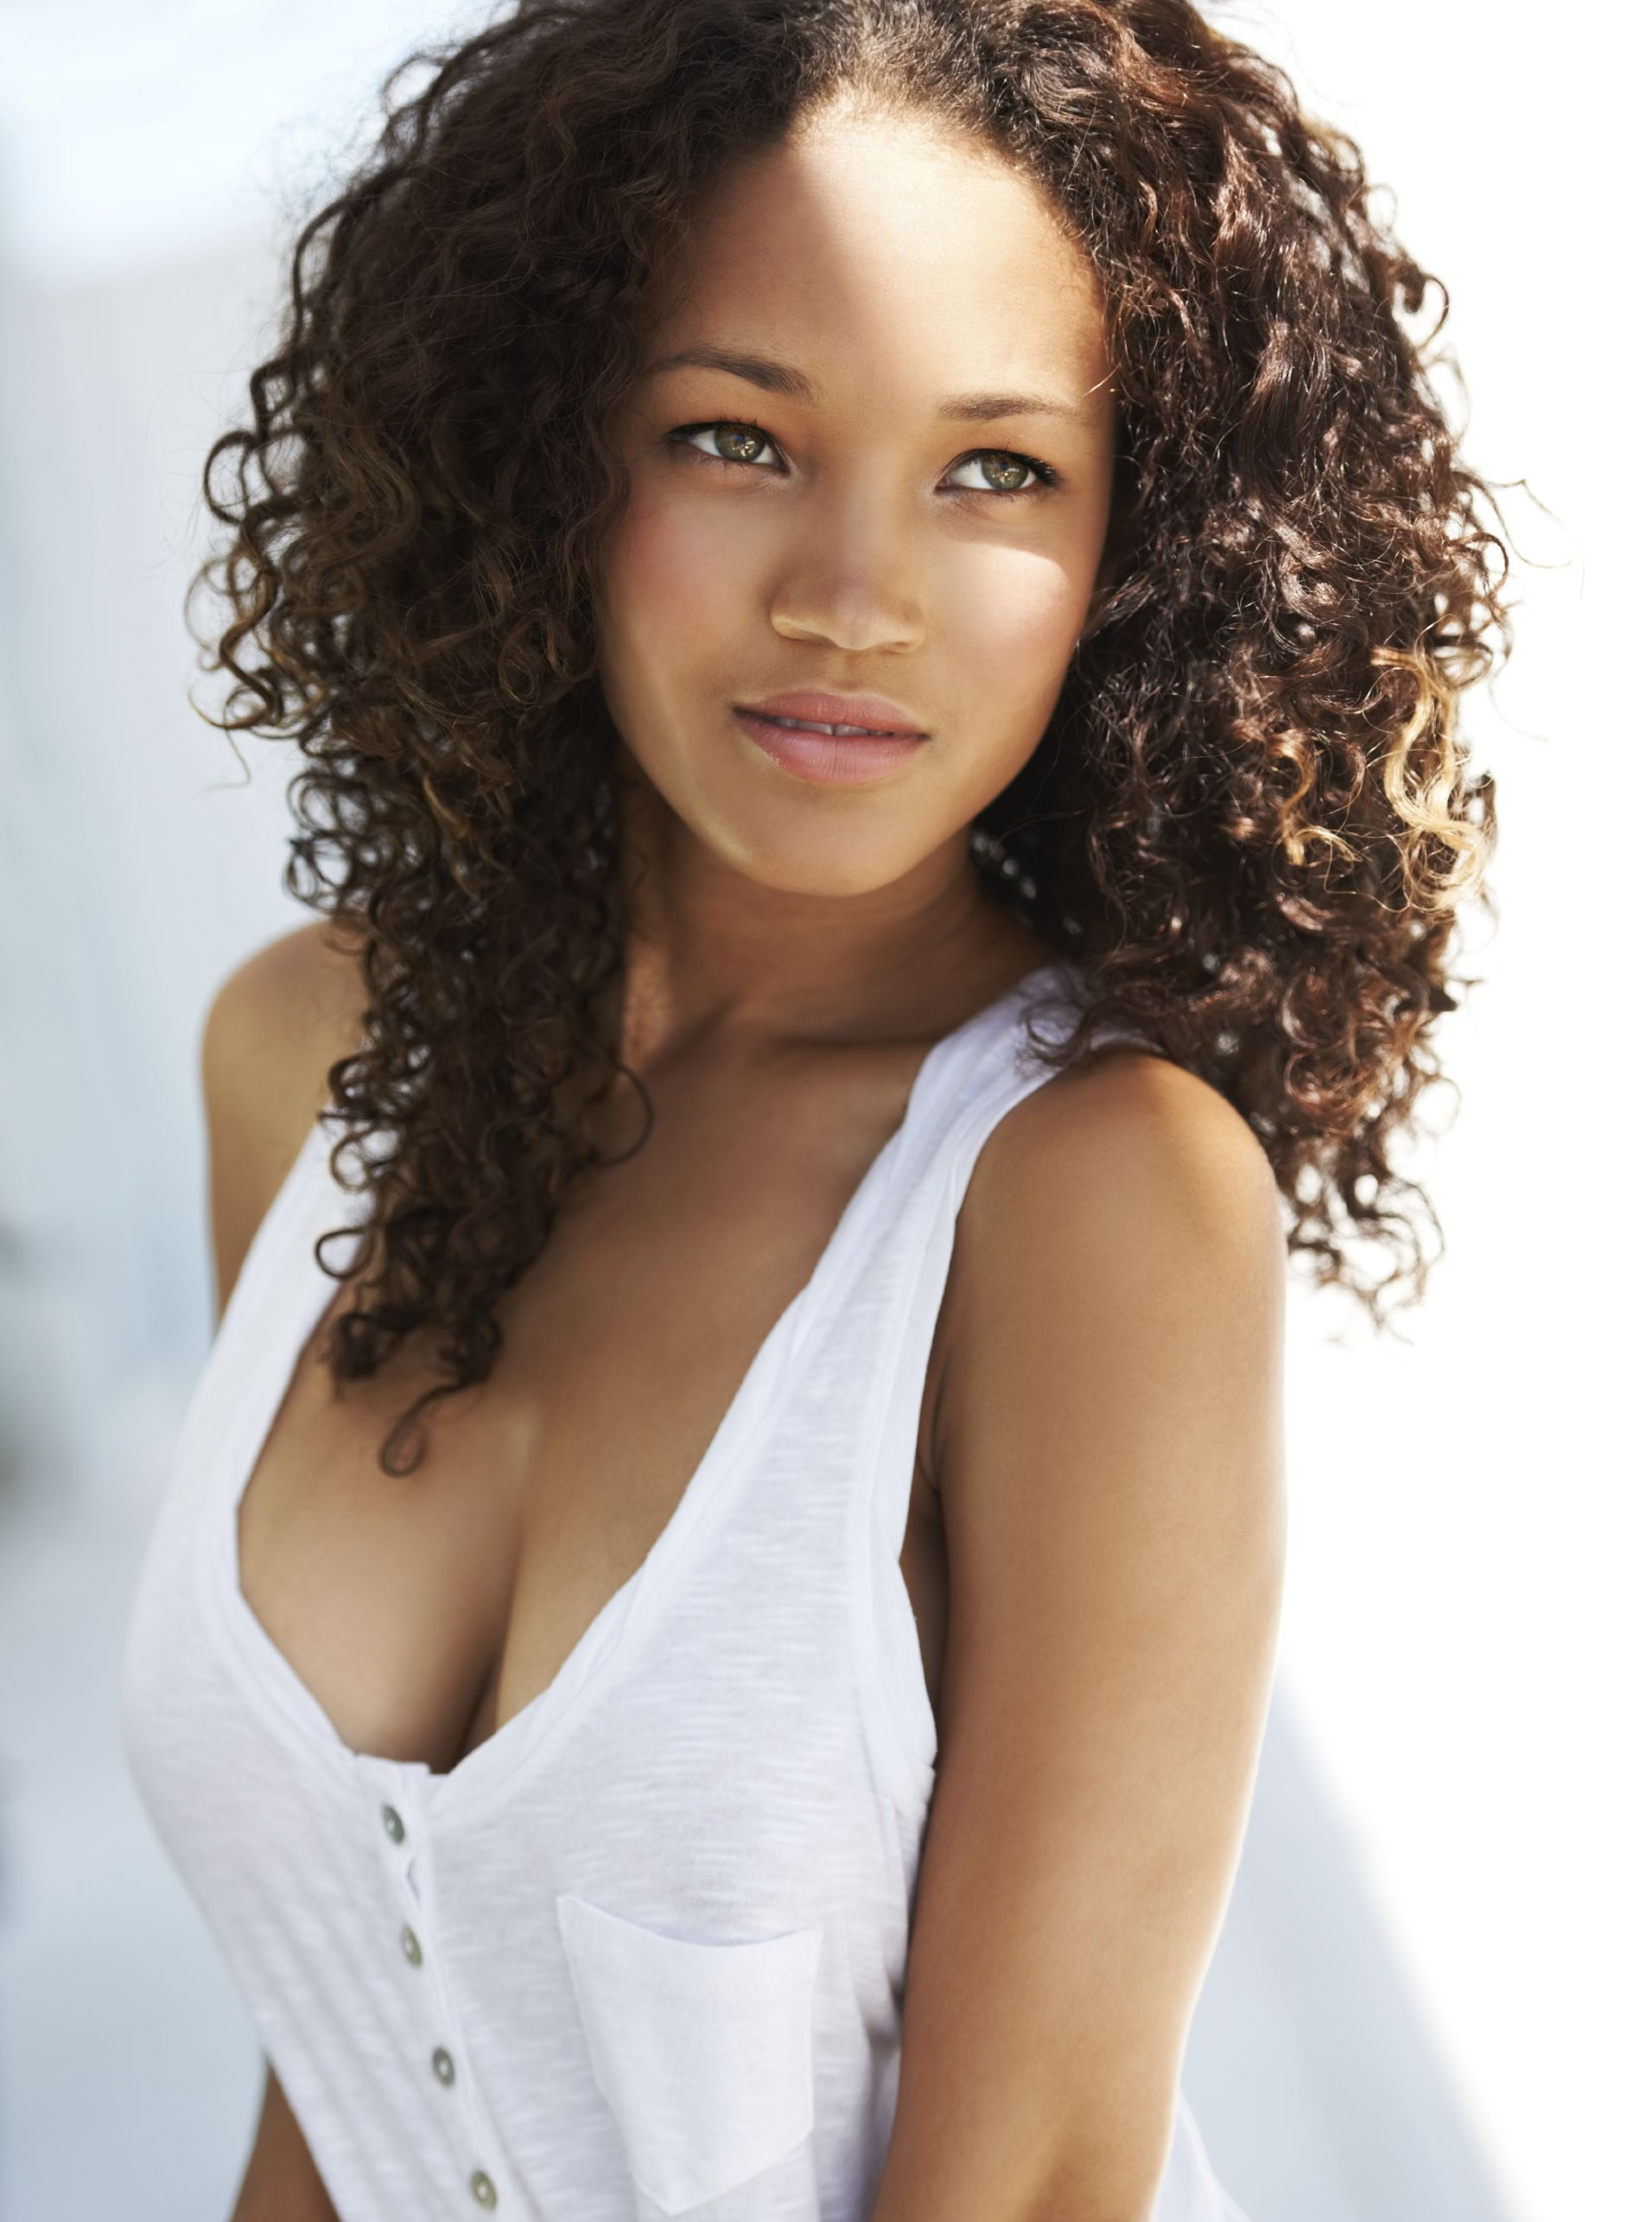 Naturally gorgeous young woman looking away | Beauty, Curly hair ...